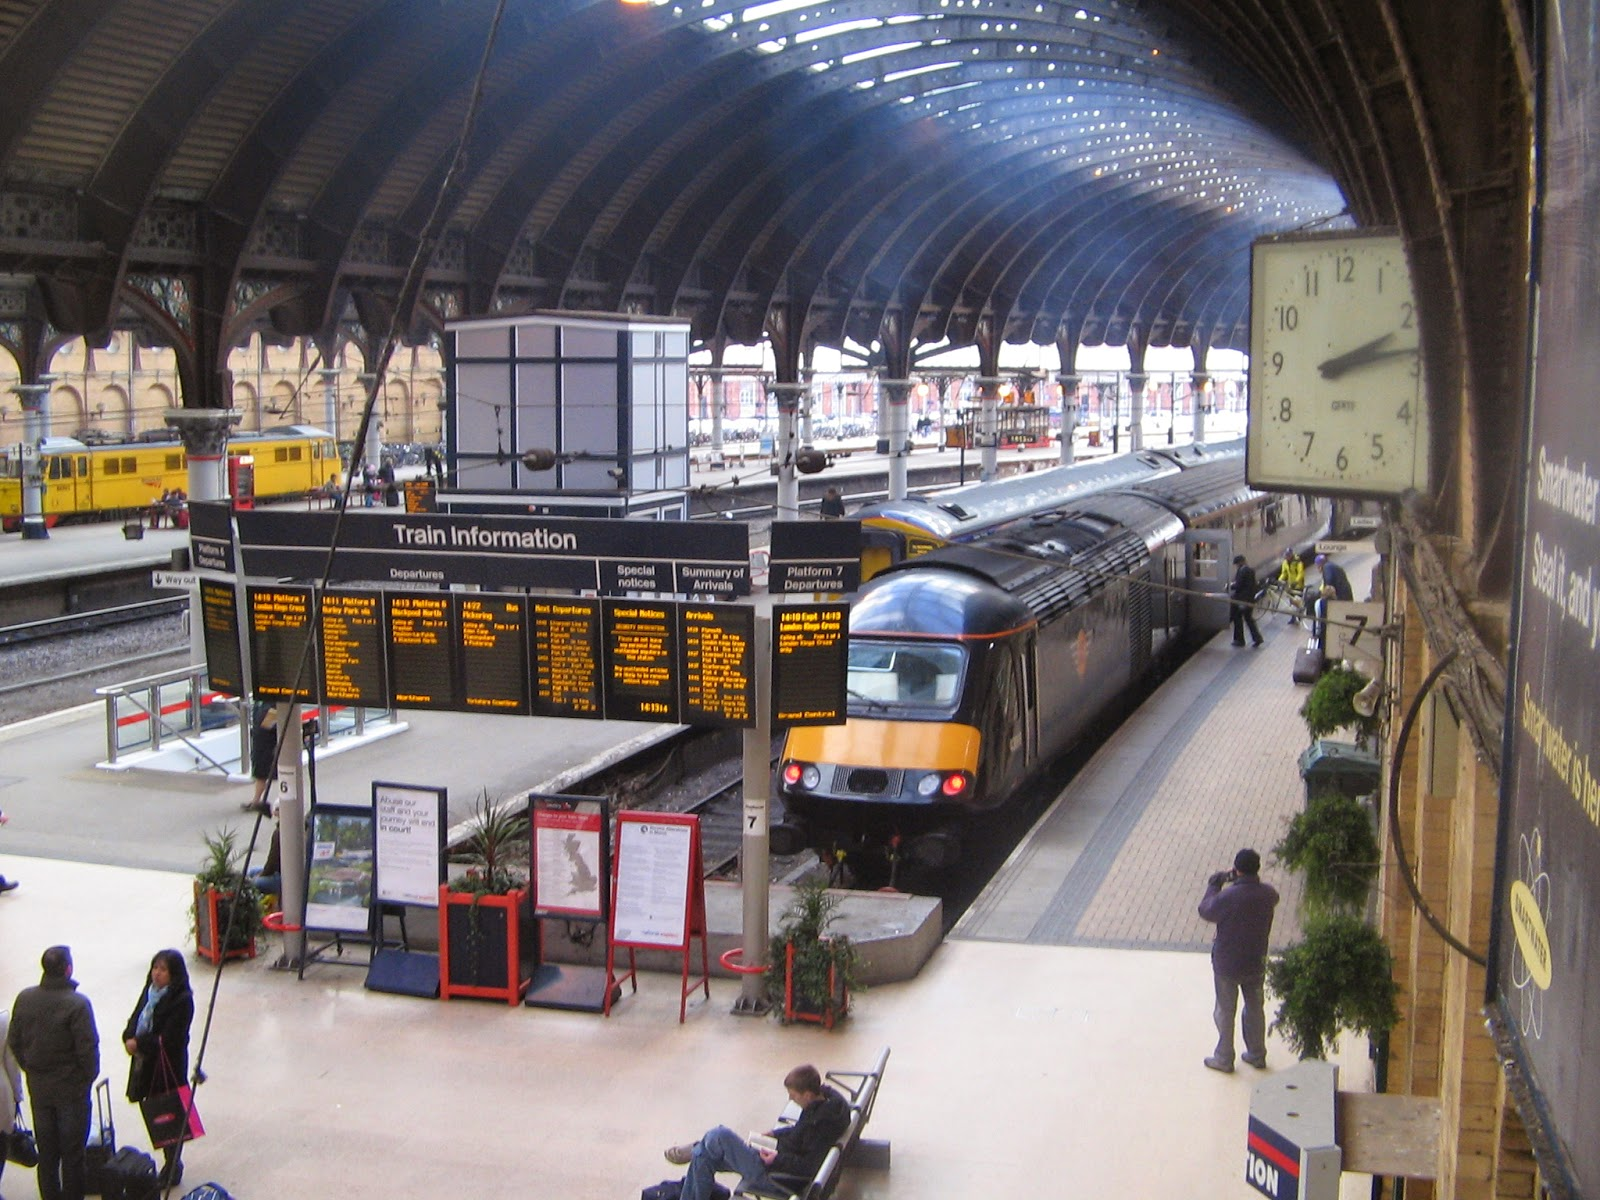 located next door to york train station is the national railway museum